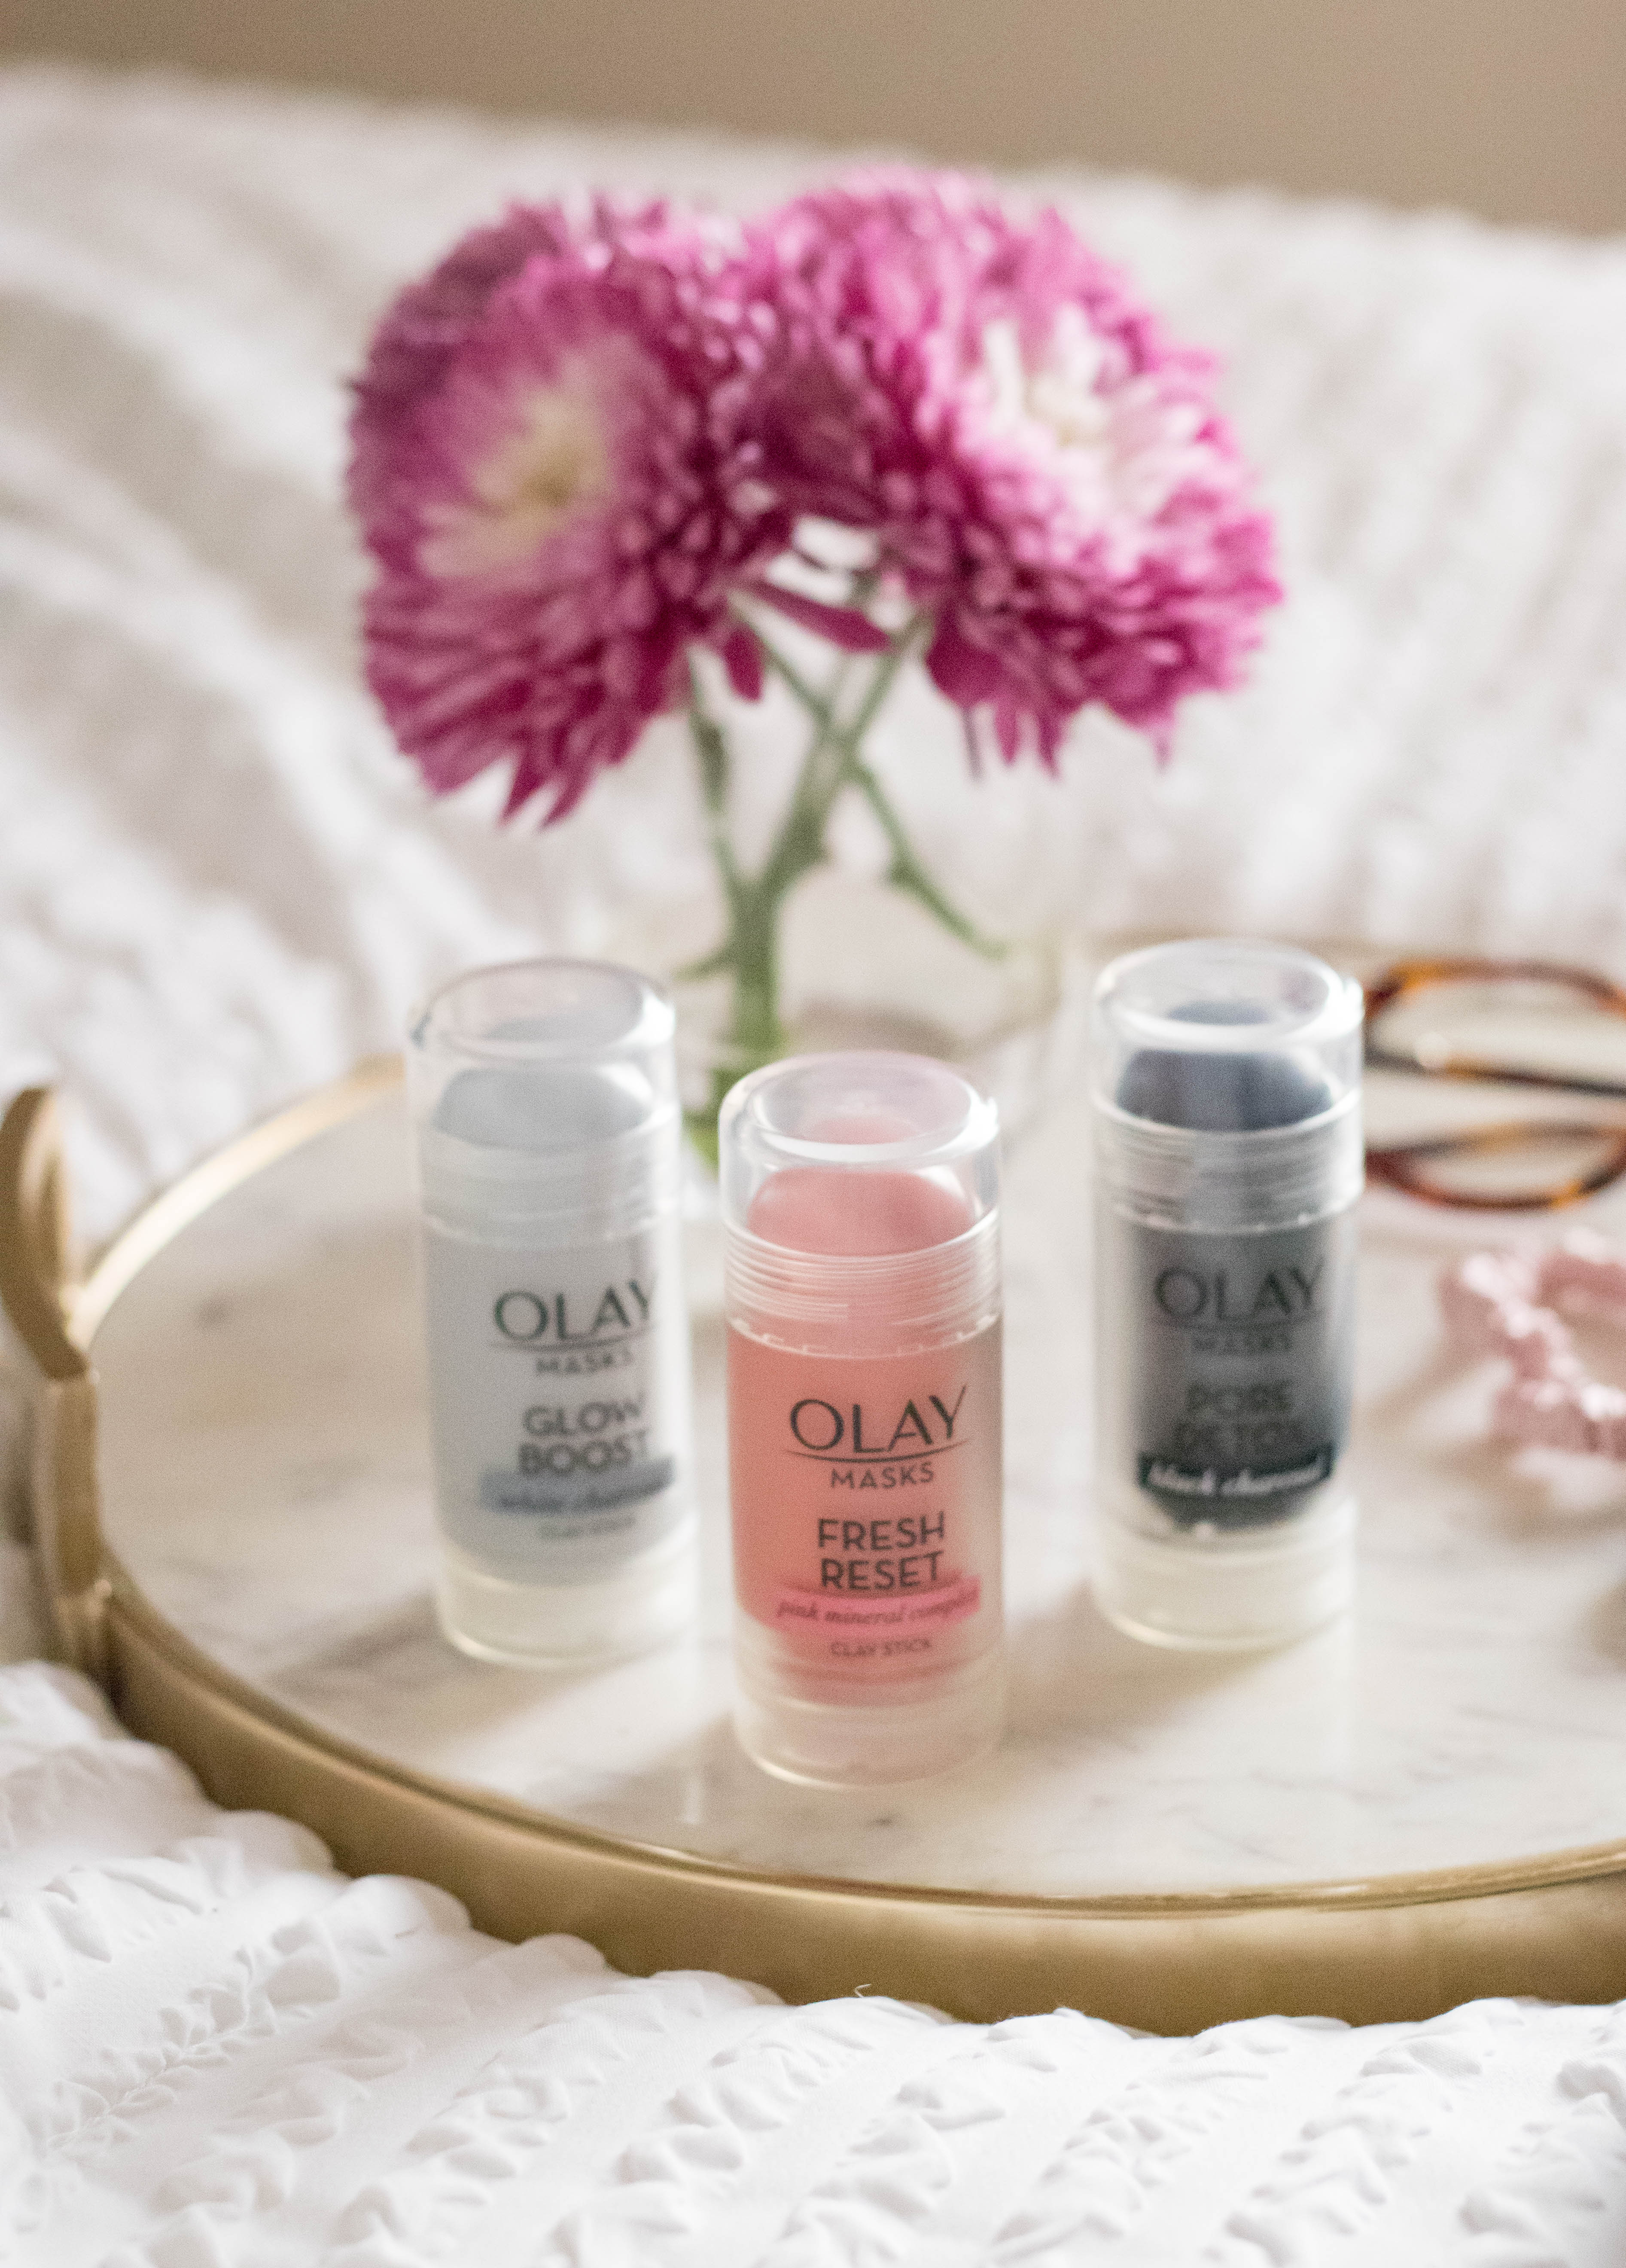 easy ways to incorporate self-care into your daily routine #selfcare #mask #olay